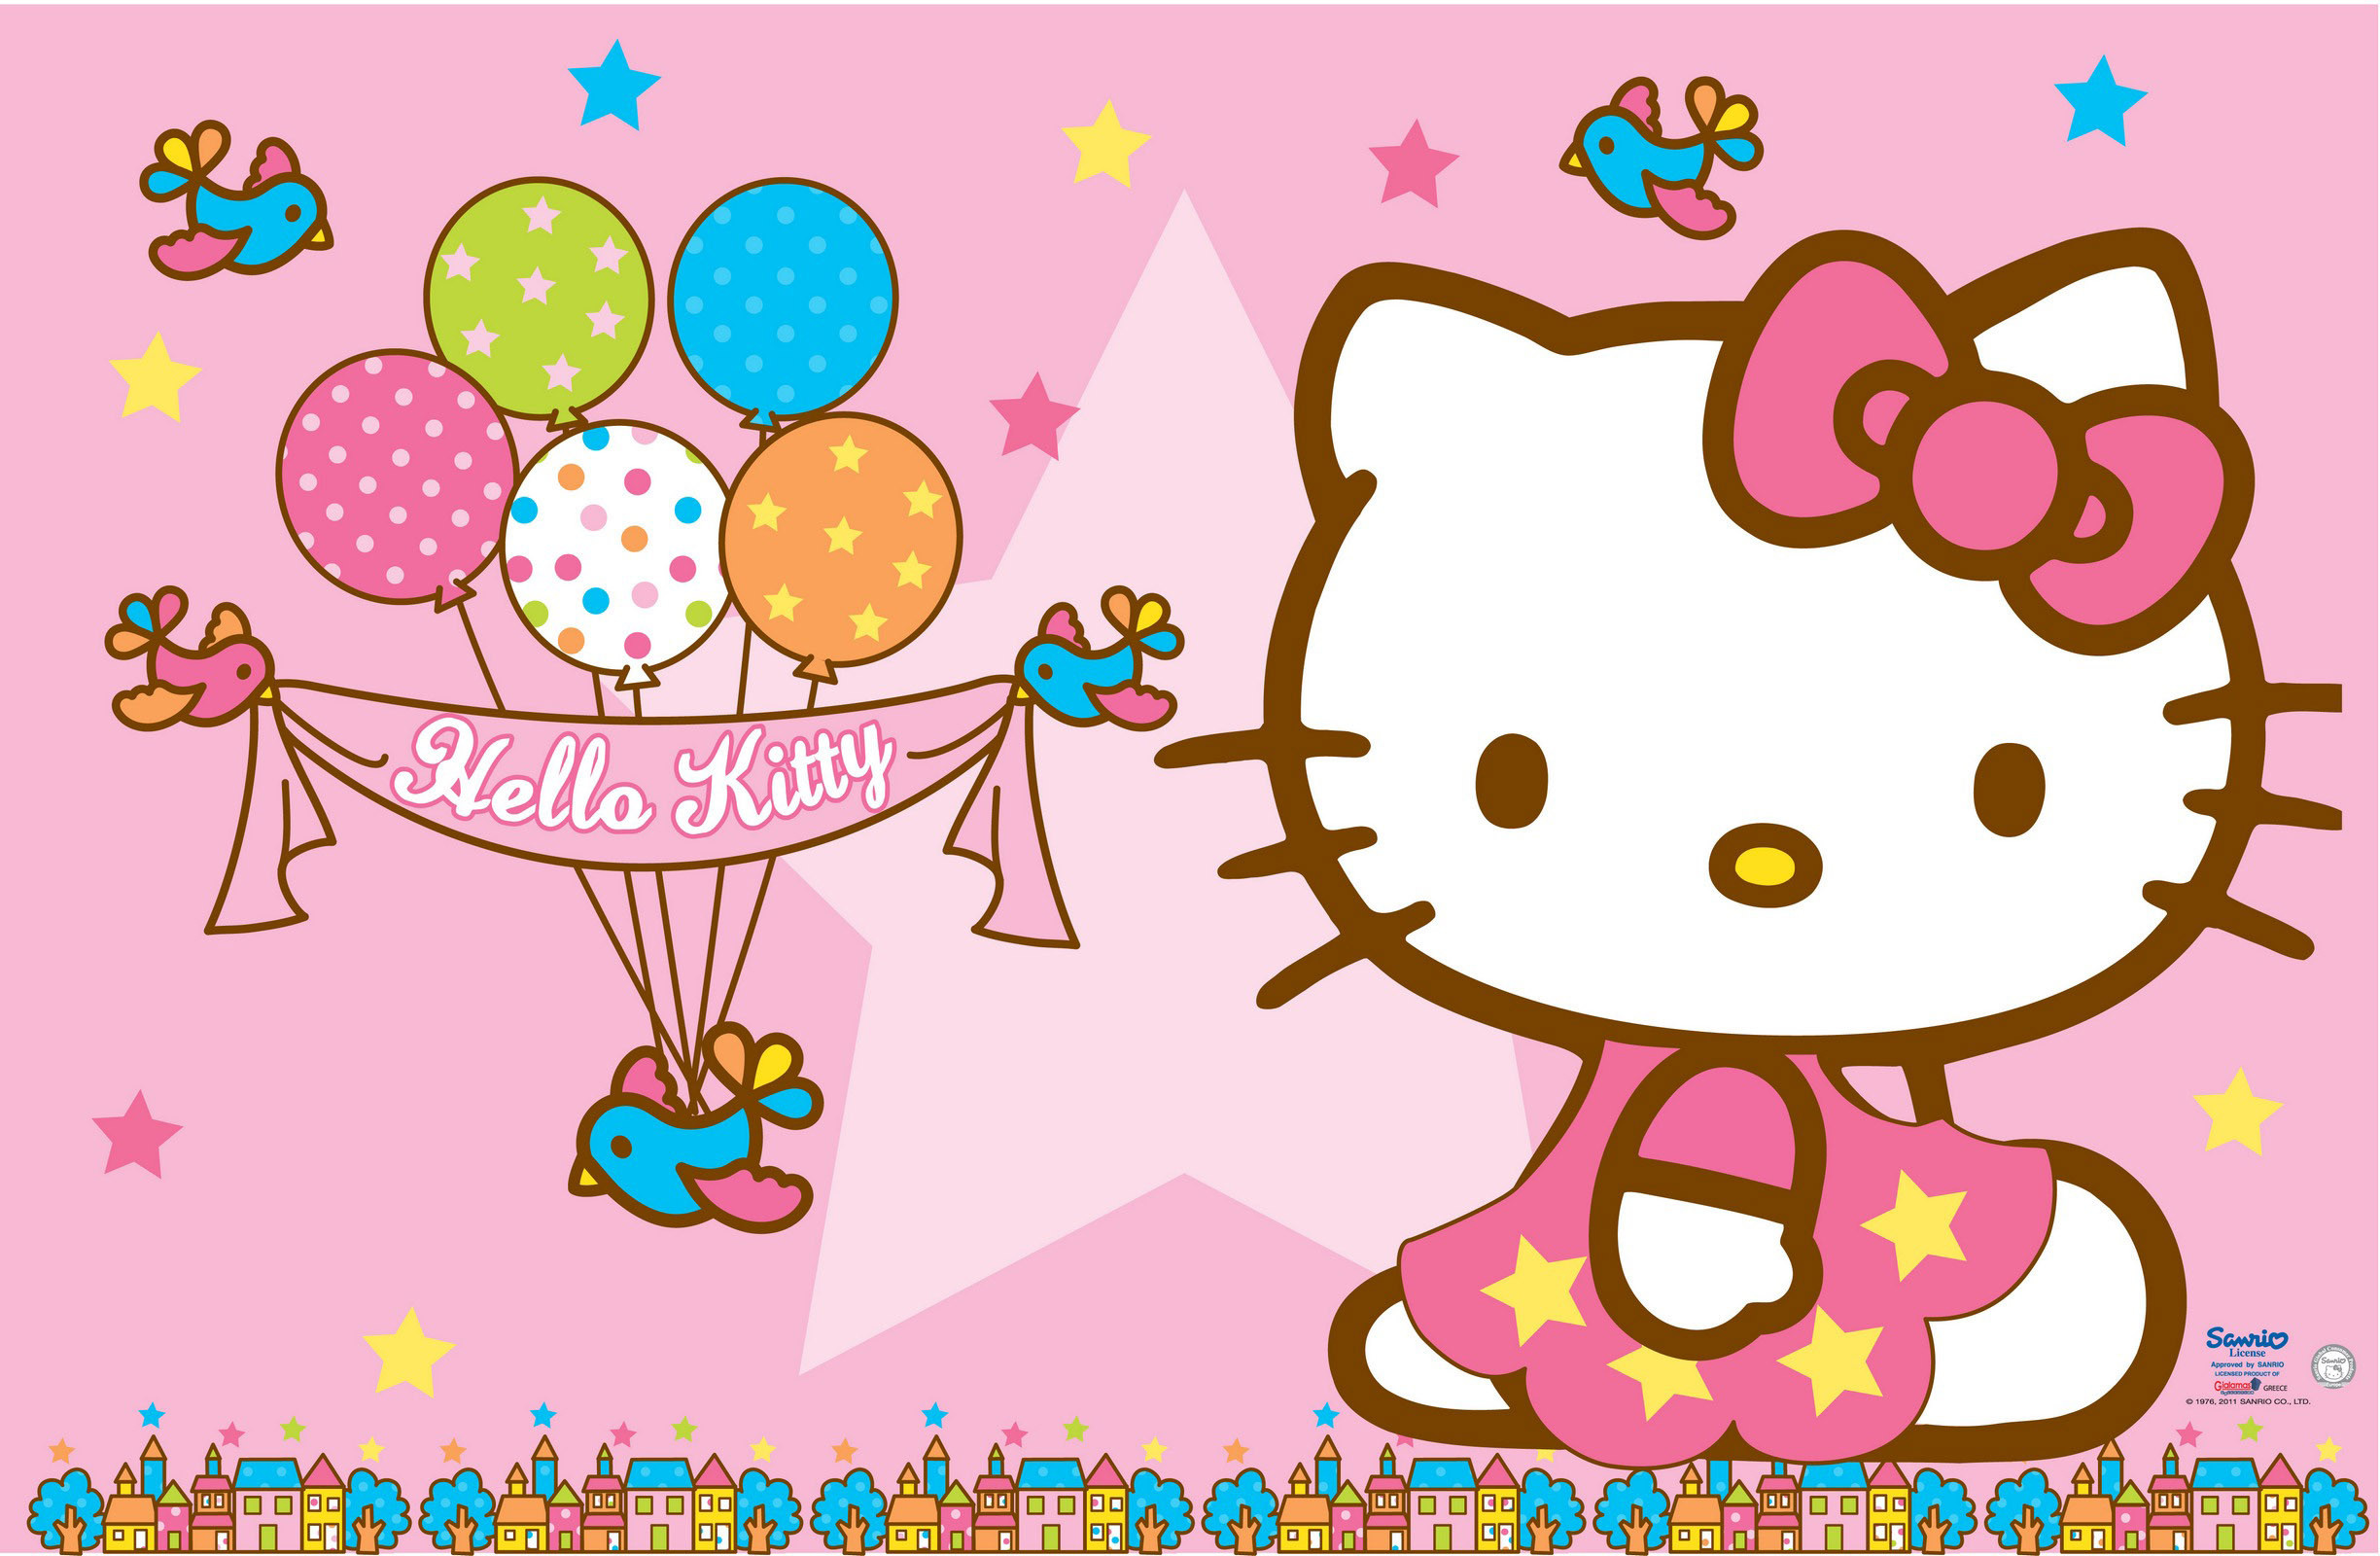 hello kitty wallpapers 2018  51 pictures hello kitty clip art images hello kitty clipart no bow